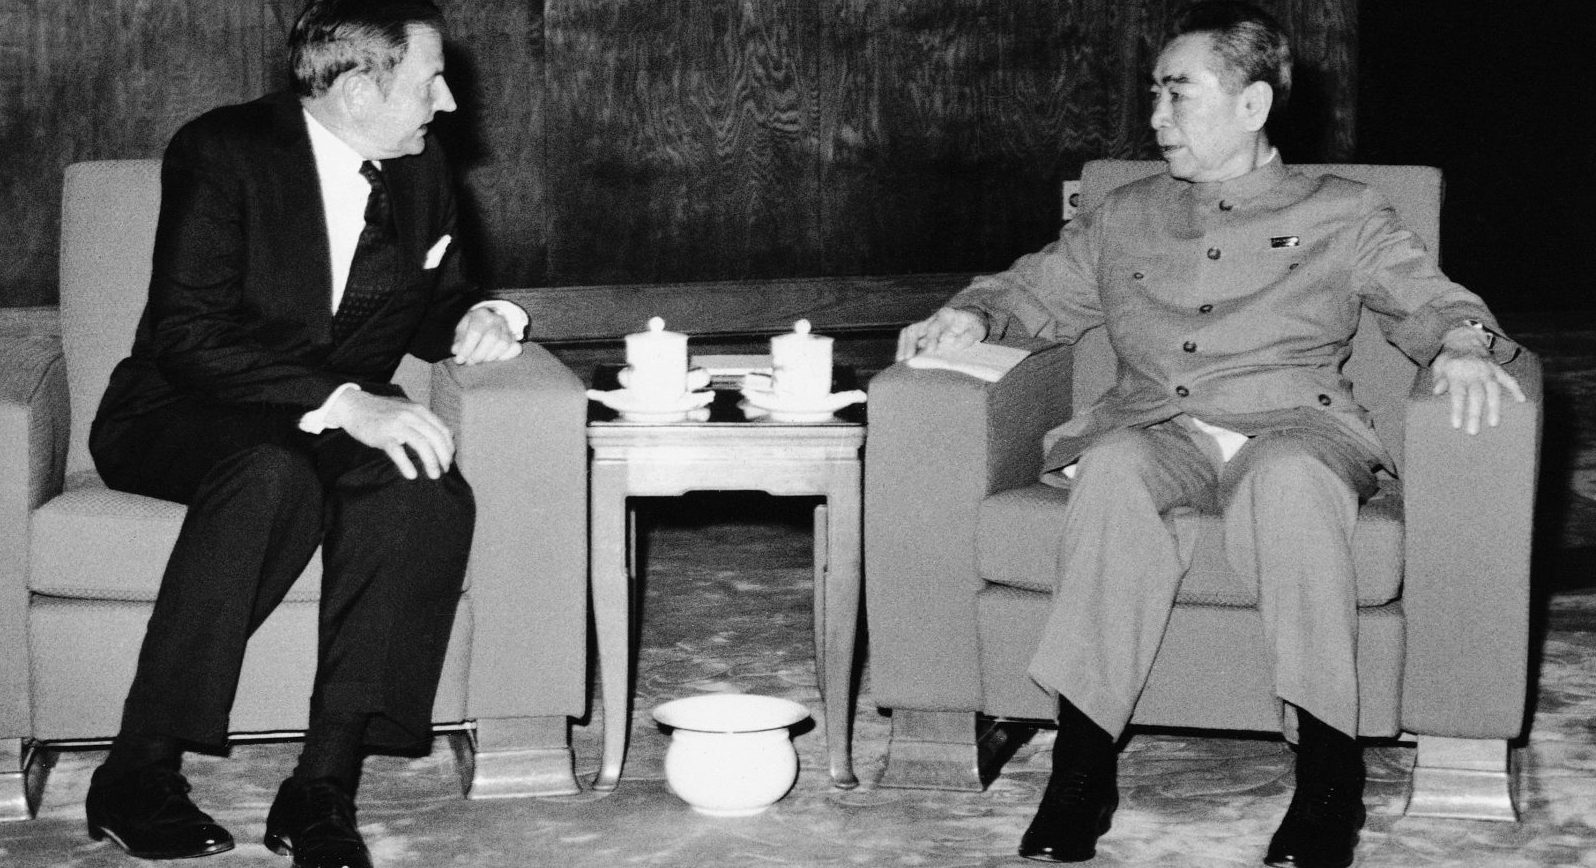 FILE - In this June 1973, file photo, David Rockefeller, left, meets with with Chinese Premier Chou En-lai in Peking. The billionaire philanthropist who was the last of his generation in the famously philanthropic Rockefeller family died Monday, March 20, 2017, according to a family spokesman.